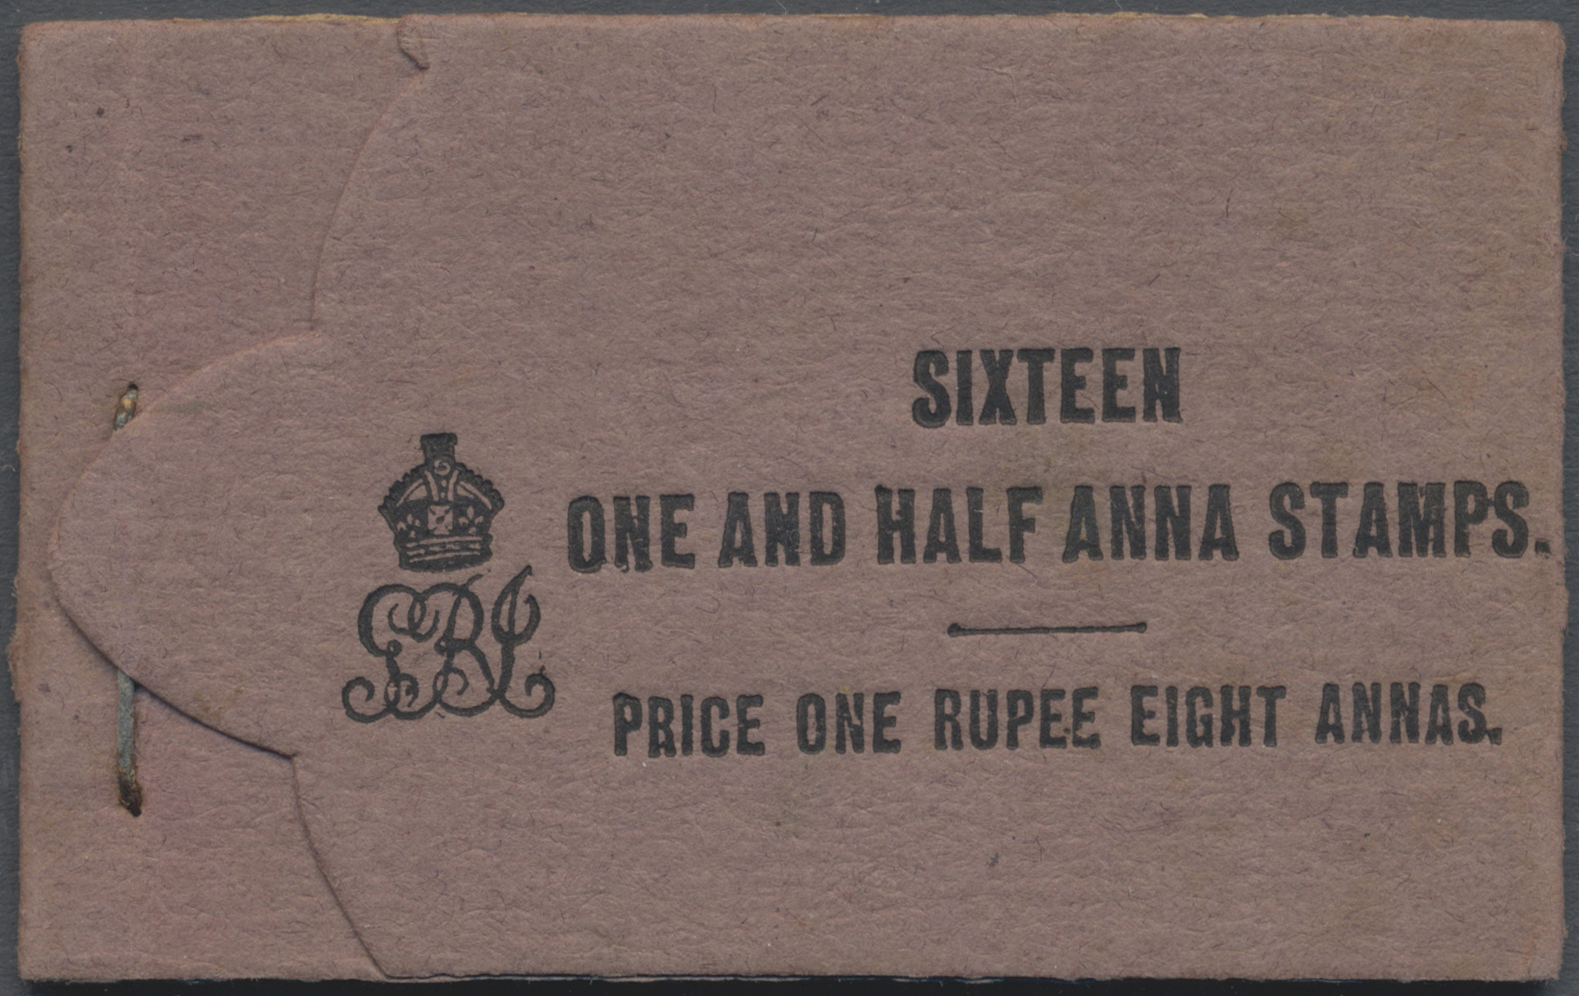 Lot 19186 - indien  -  Auktionshaus Christoph Gärtner GmbH & Co. KG Sale #47 Collections: Overseas, Thematics, Europe